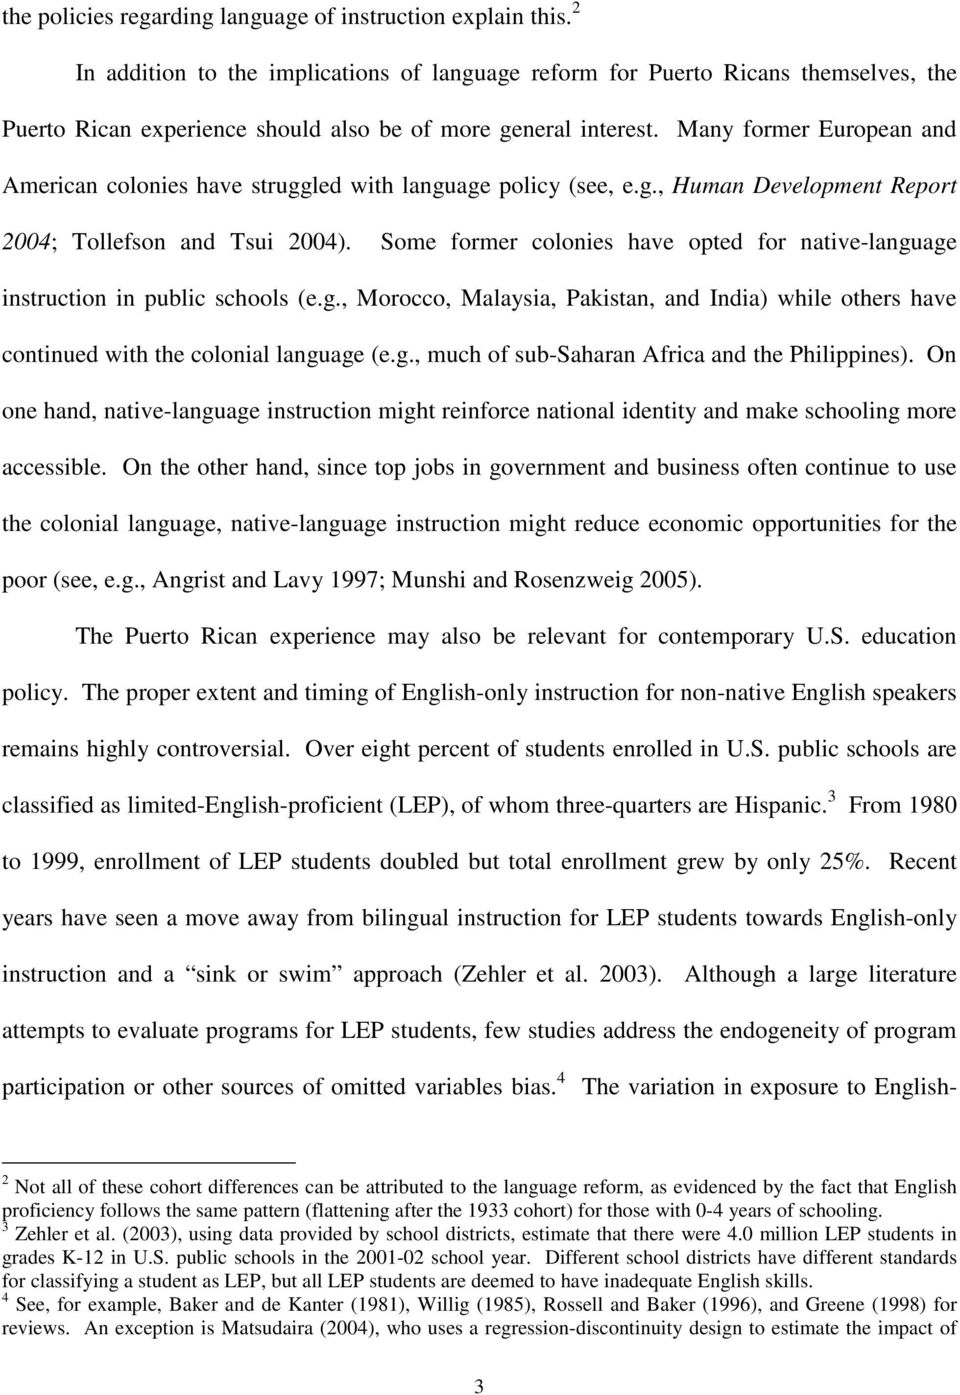 Many former European and American colonies have struggled with language policy (see, e.g., Human Development Report 2004; Tollefson and Tsui 2004).